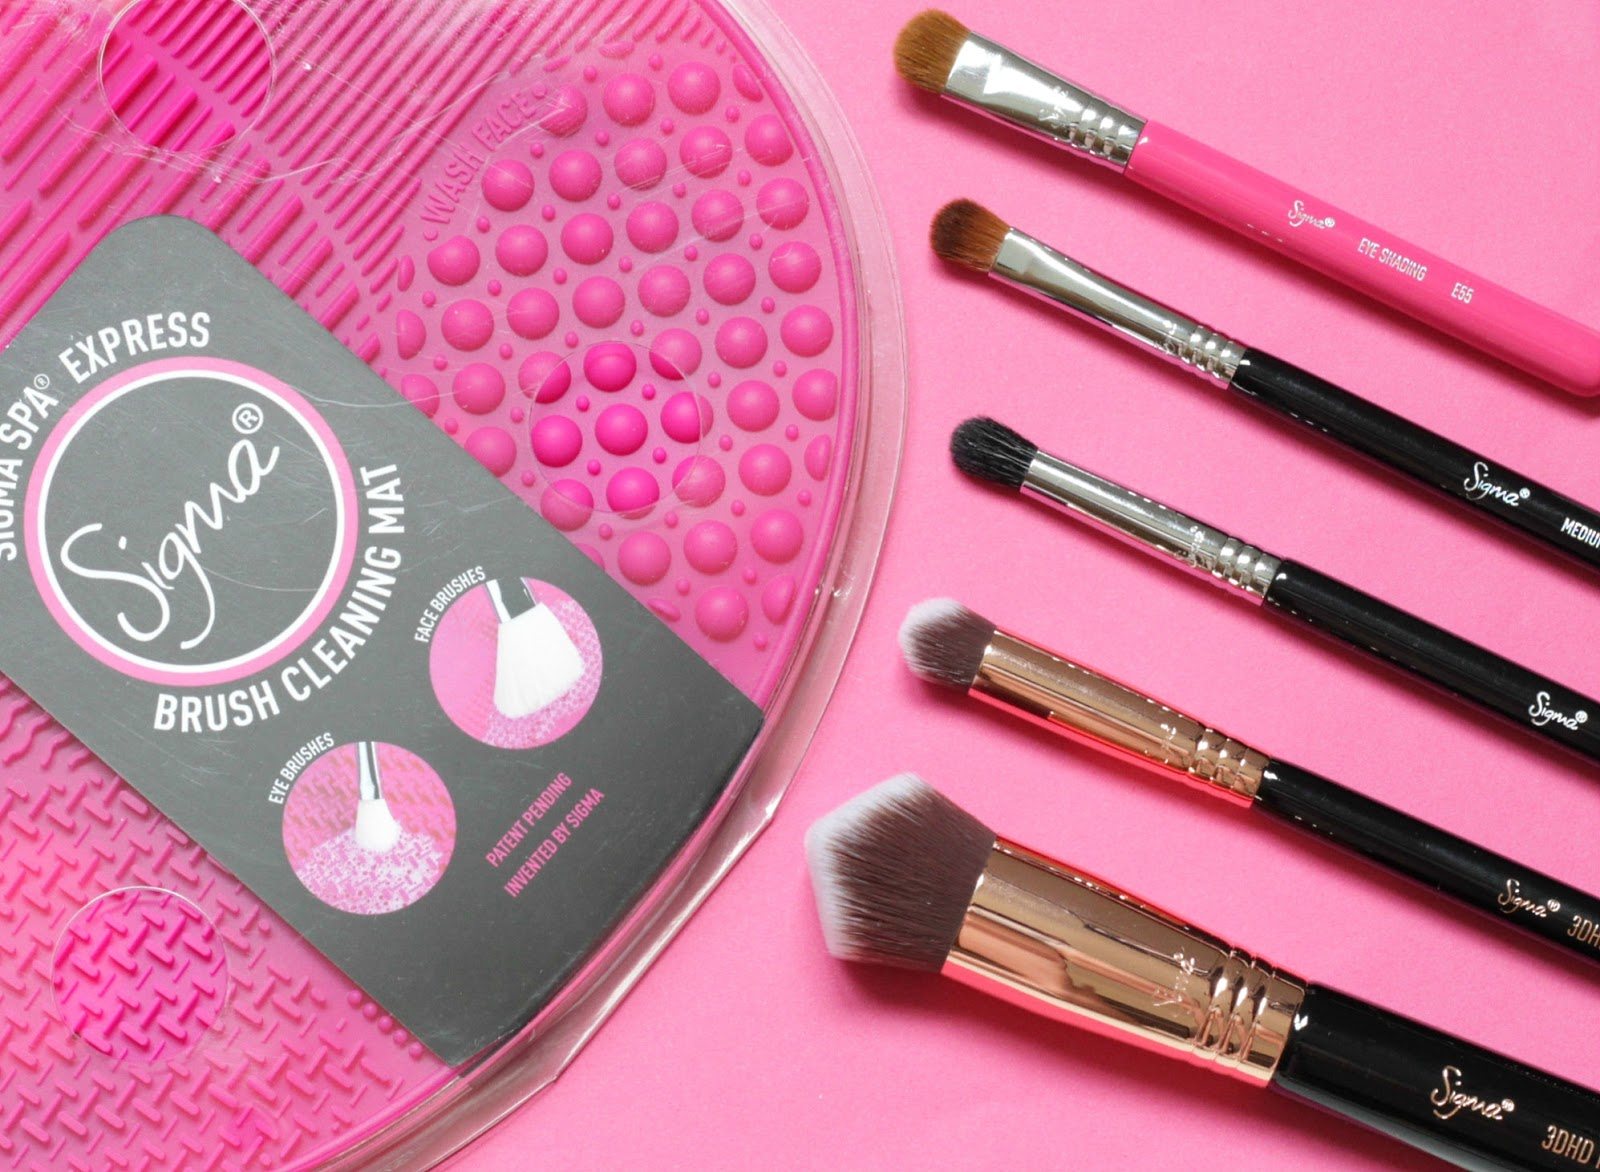 Sigma Beauty Brushes Amp Spa Express Brush Cleaning Mat